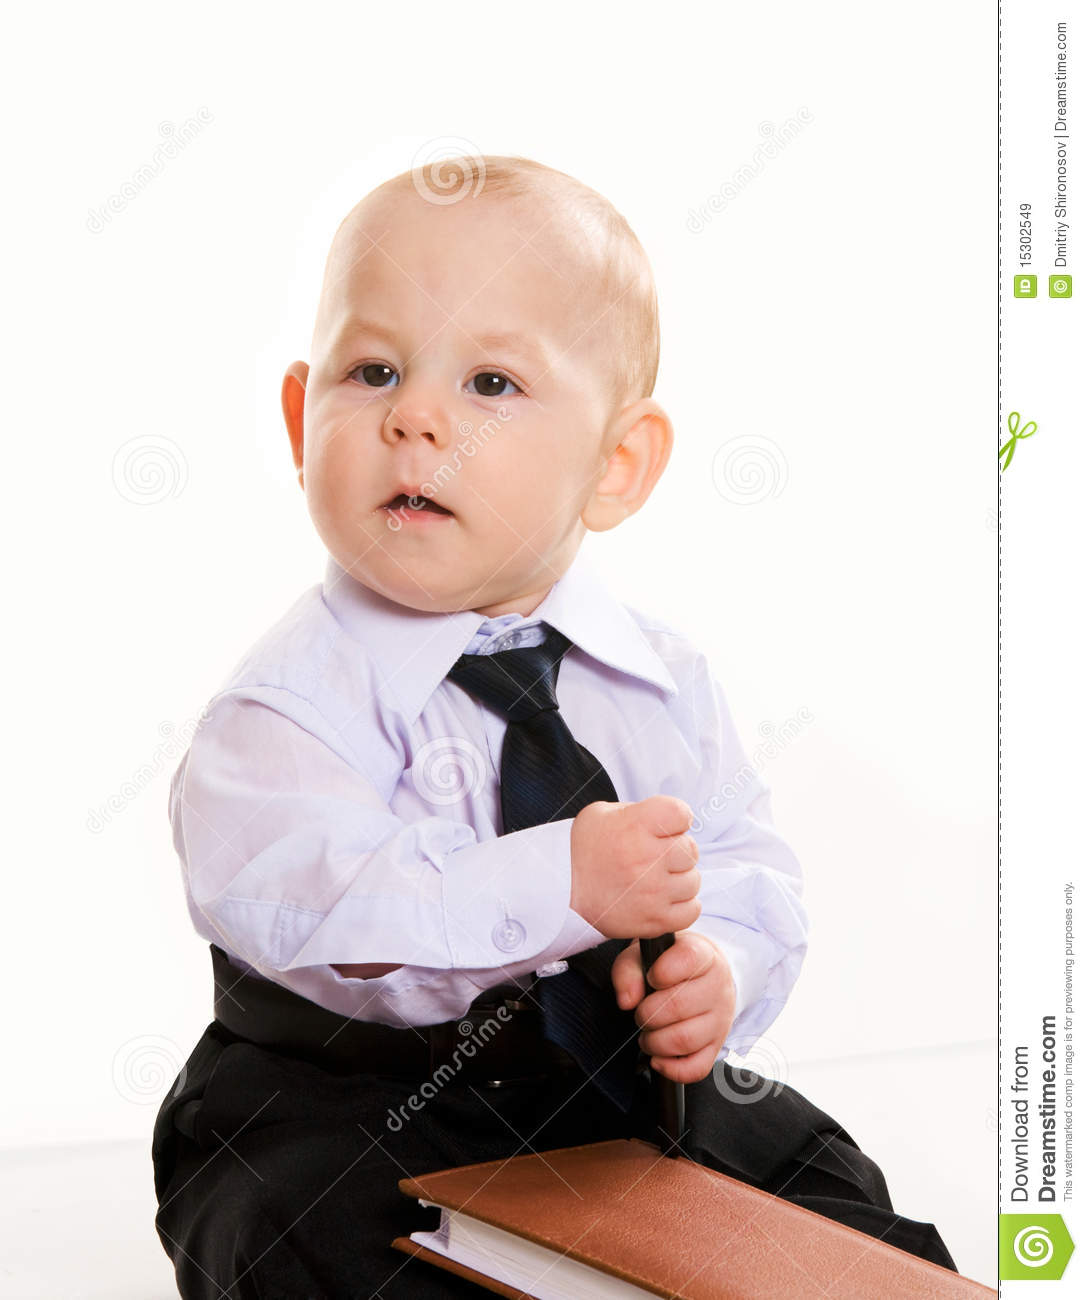 Business Baby Royalty Free Stock Images Image 15302549